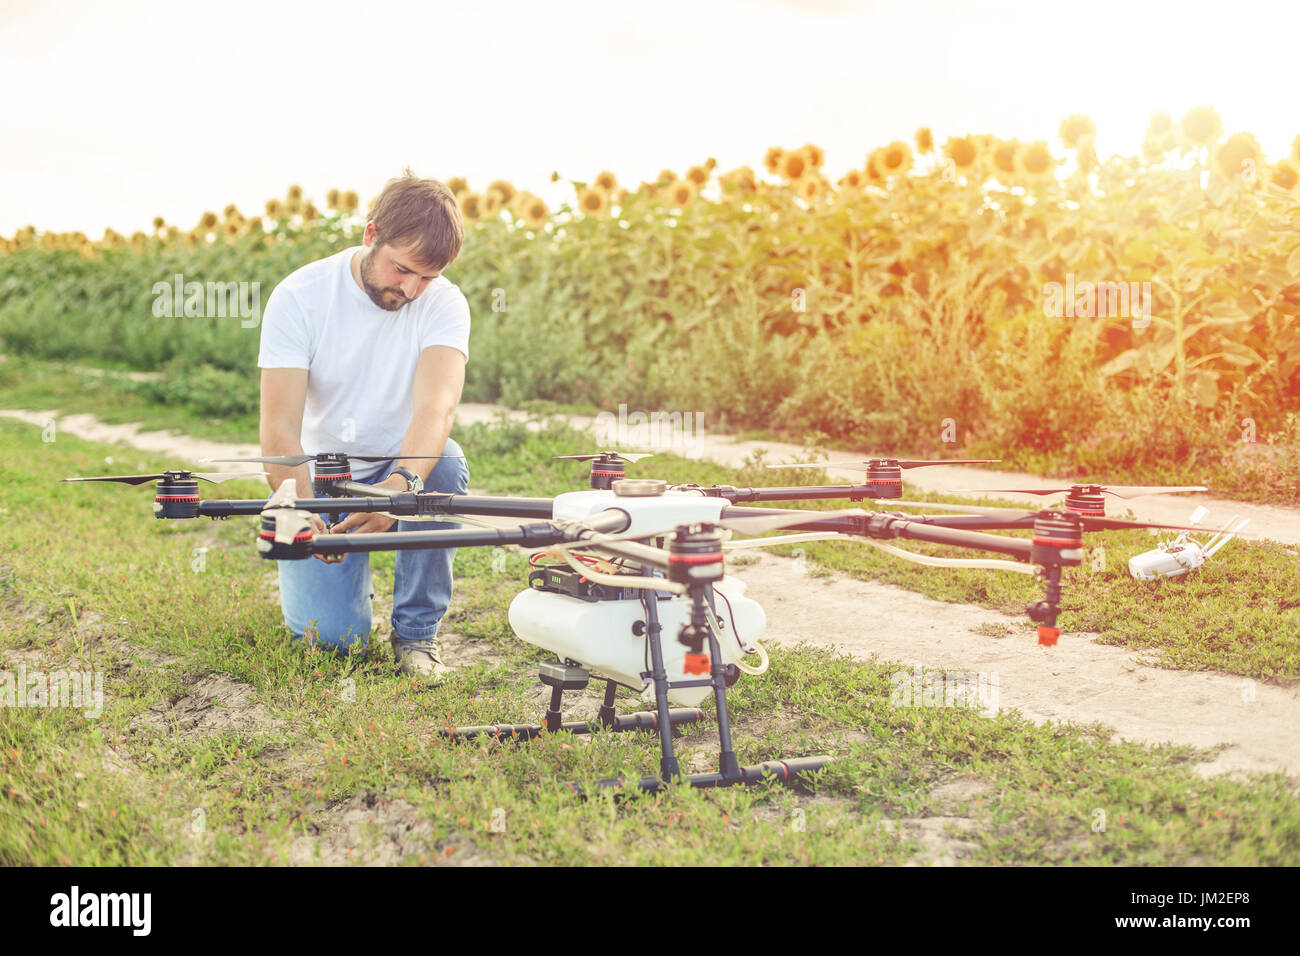 Young engineer preparing agriculture drone before flying - Stock Image